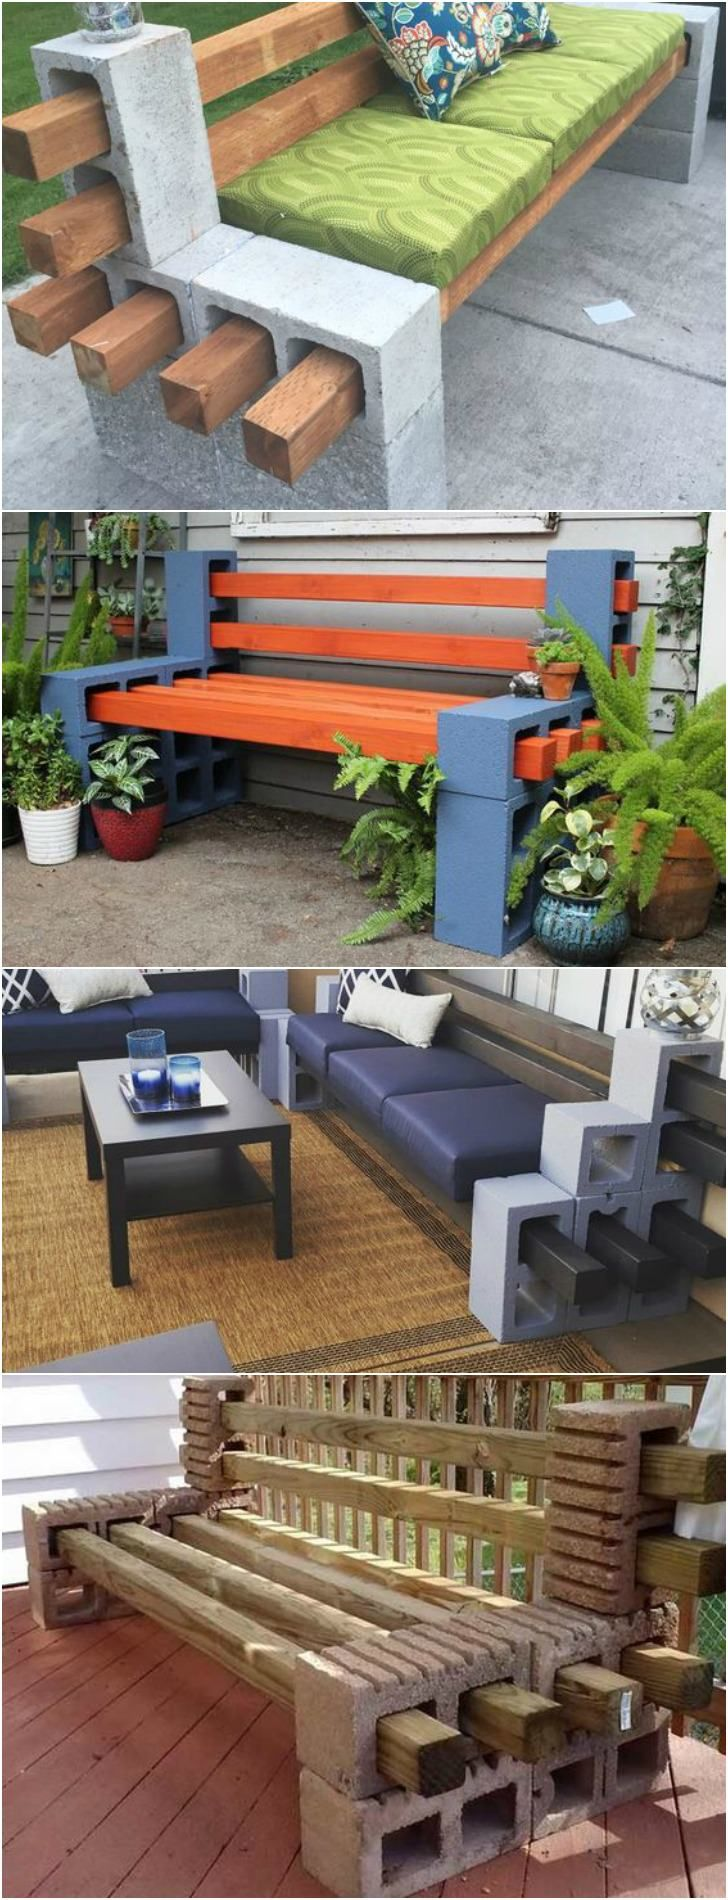 Find this Pin and more on diy furniture hacks. 25  best Diy outdoor furniture ideas on Pinterest   Outdoor